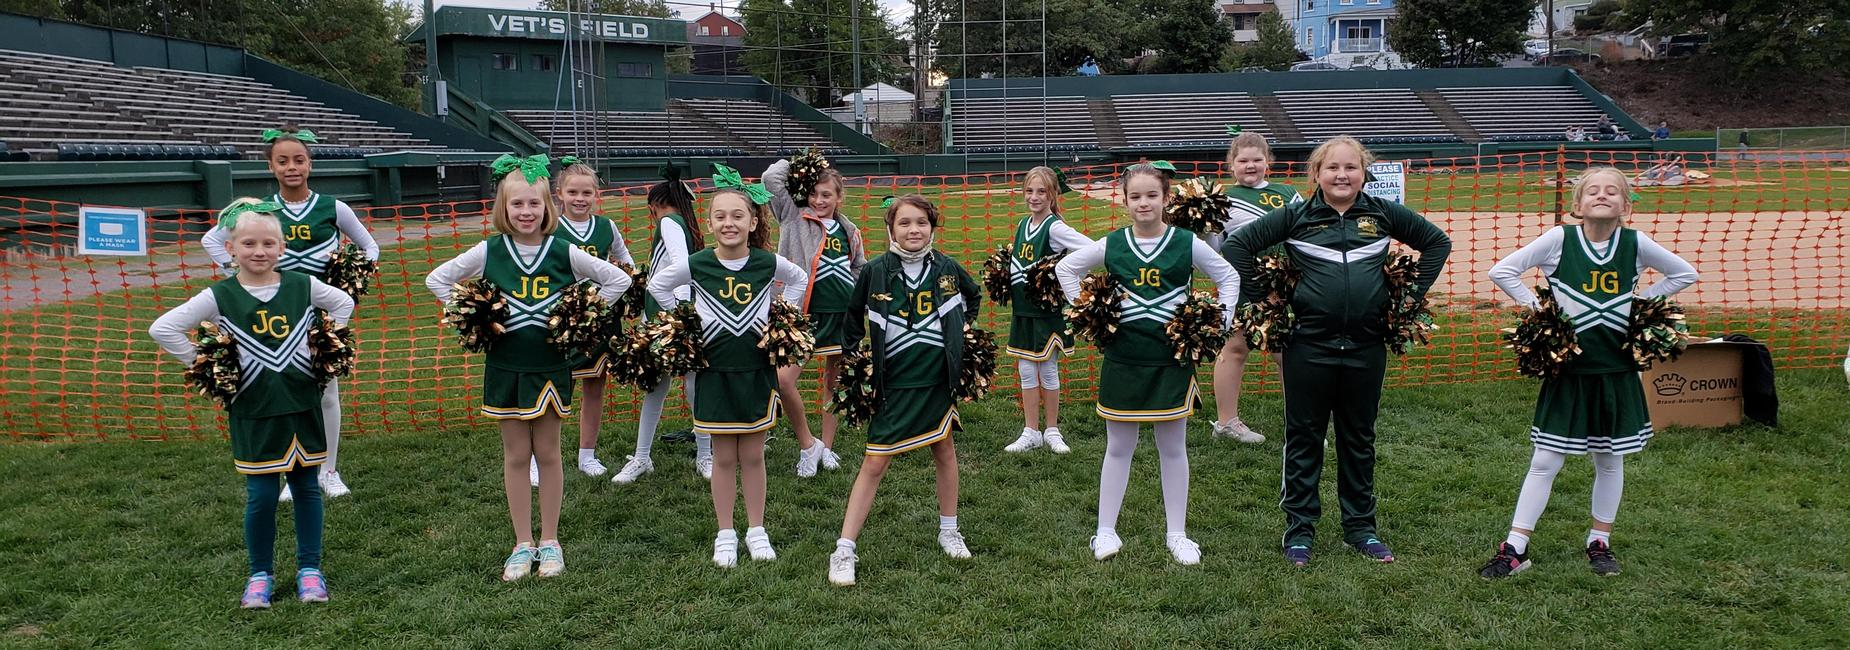 Juniata Gap Cheerleaders